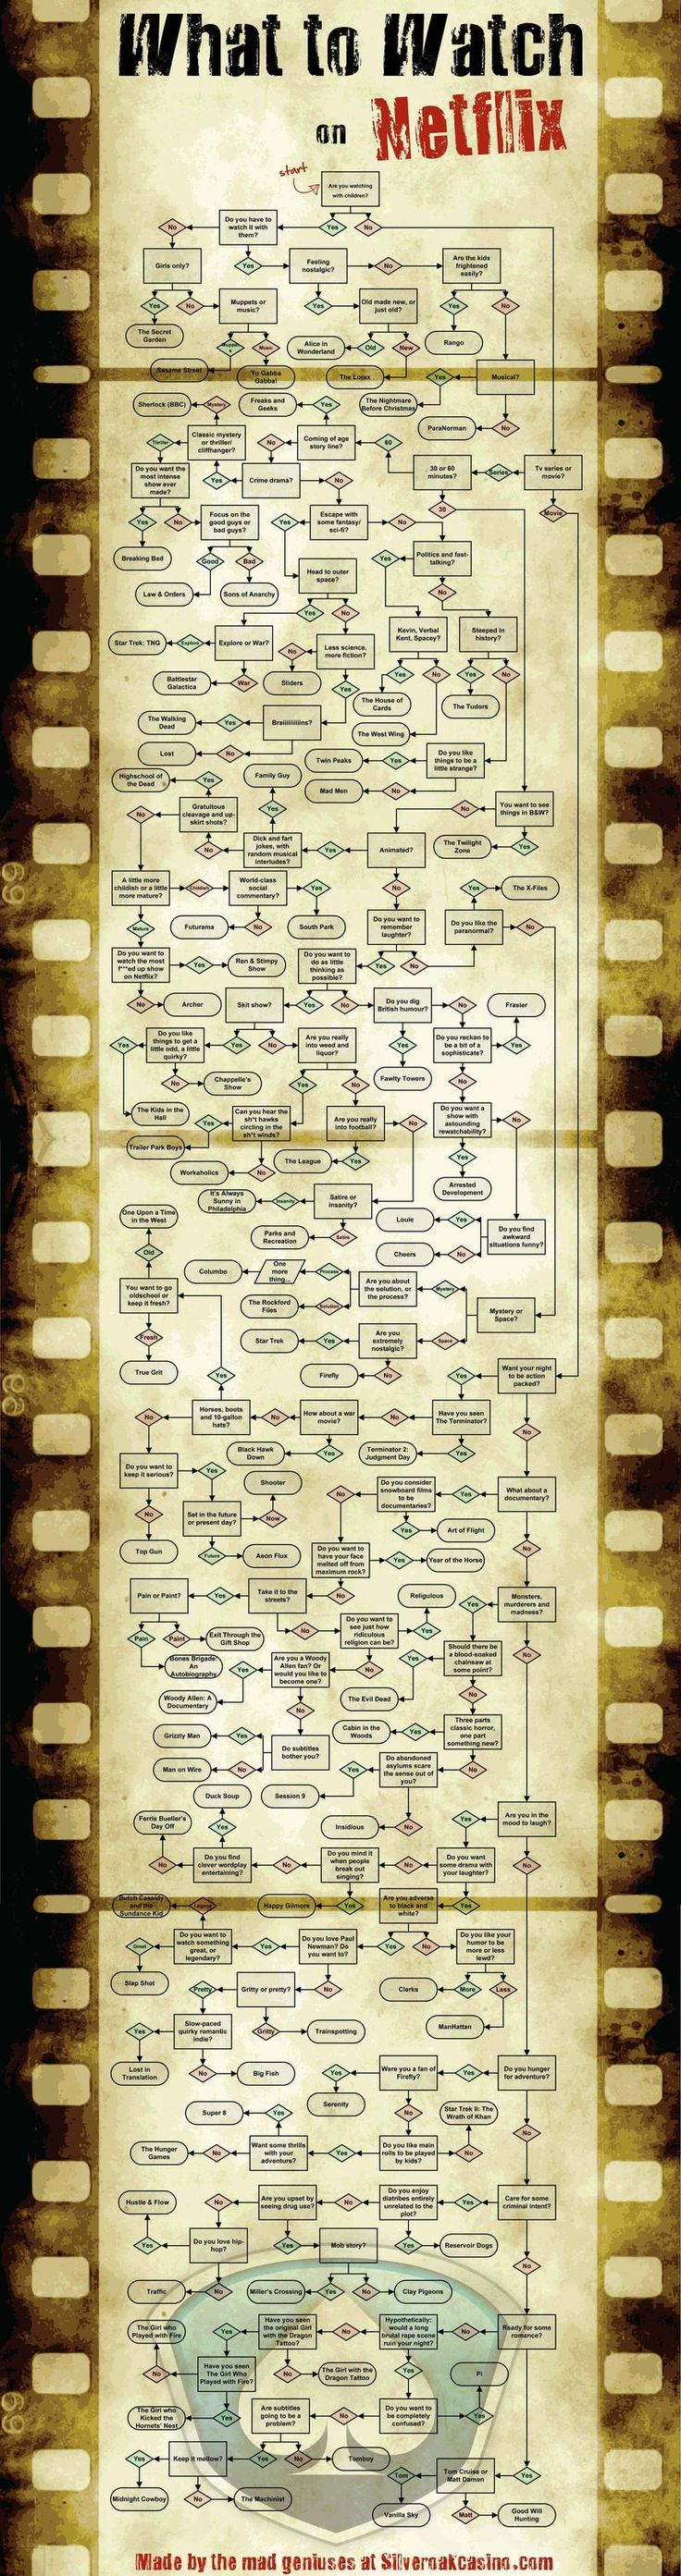 Don't know what to watch on Netflix?  Follow this handy dandy flowchart!